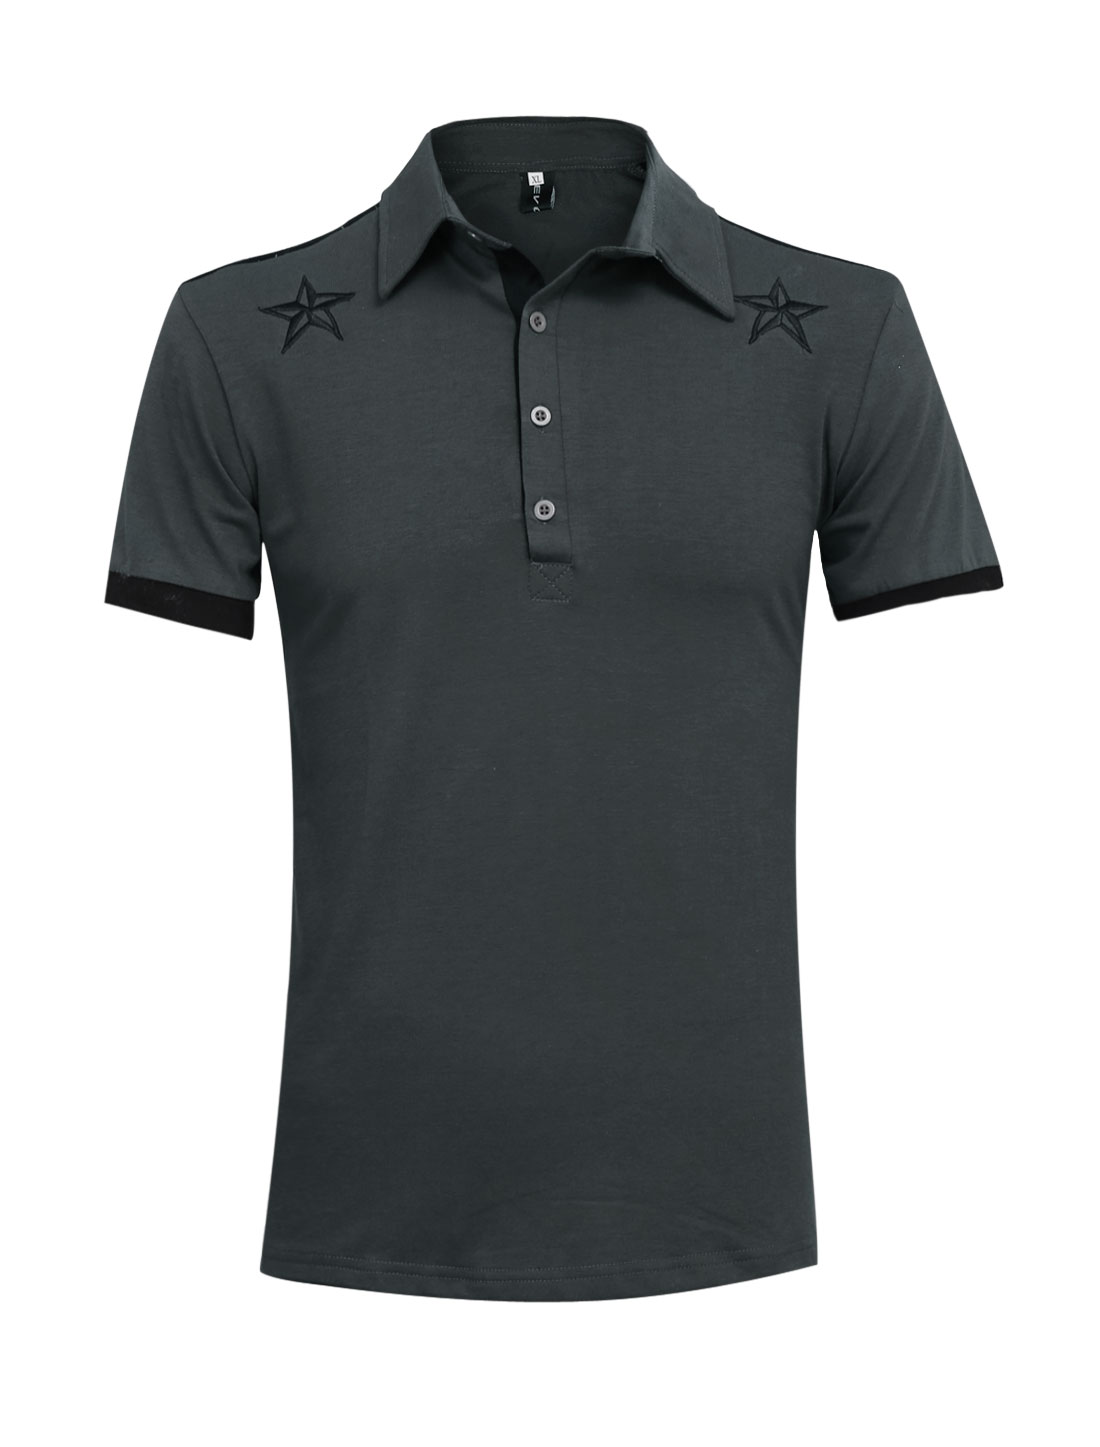 Men Point Collar Star Embroidery Slim Fit Polo Shirt Dark Gray M